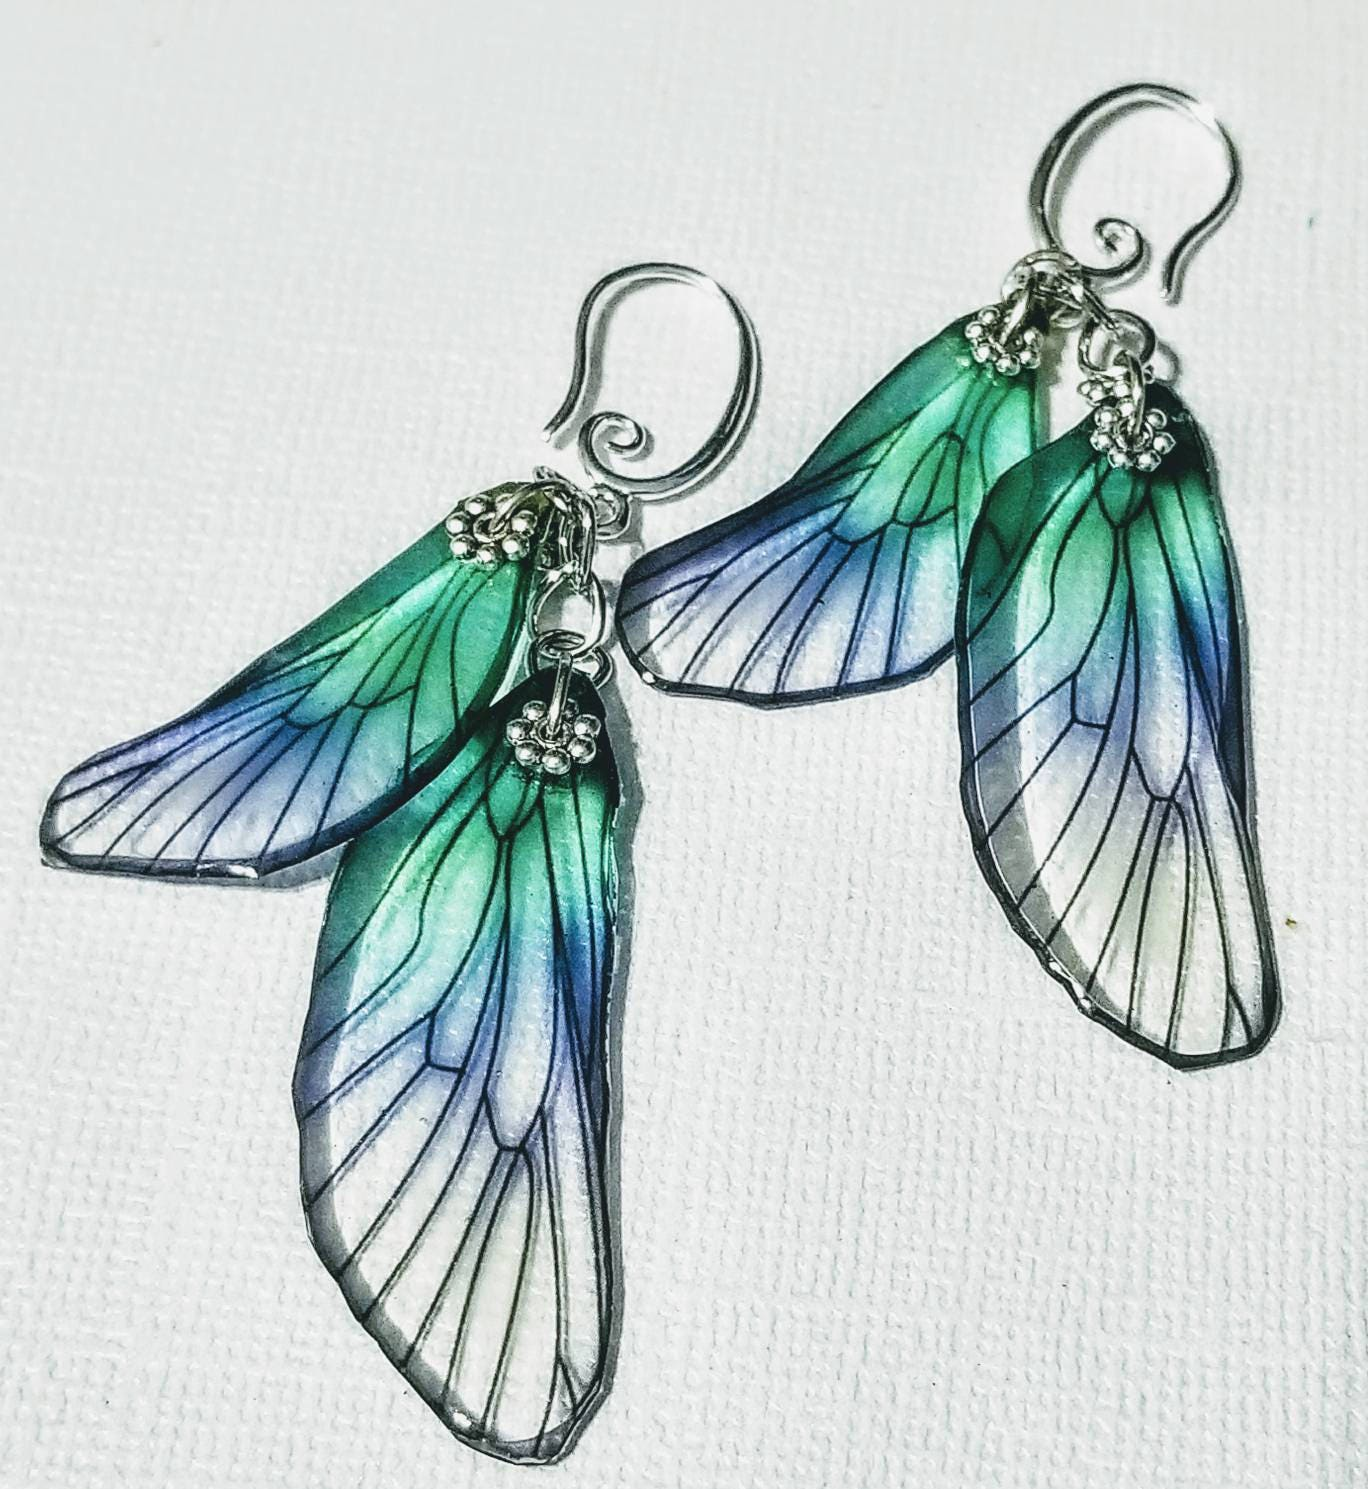 Iridescent Wings Photograph by Olahs Photography |Iridescent Dragonflies